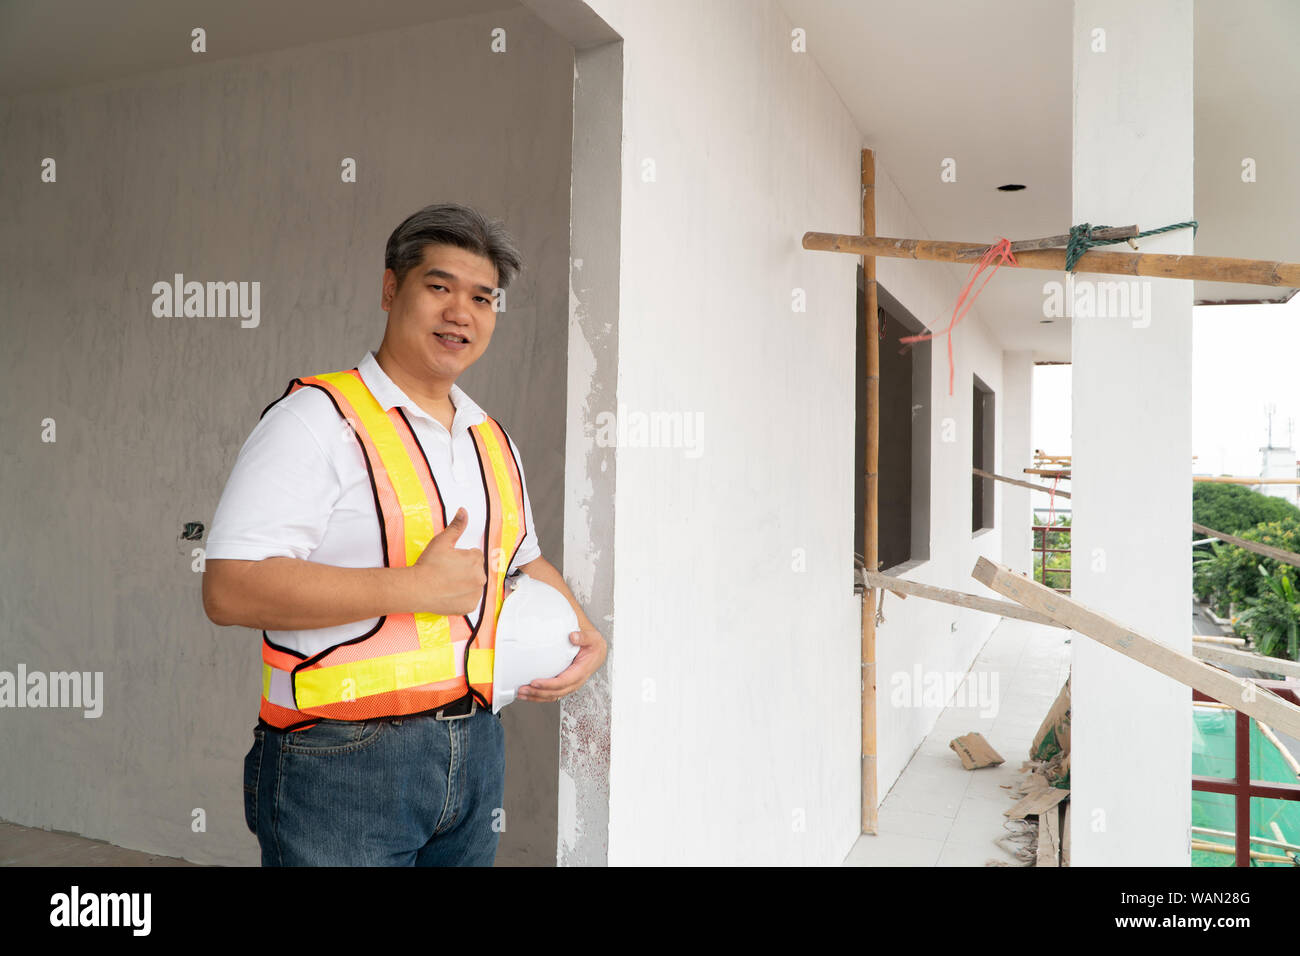 Asian professional engineer workering in house construction site for inspection of the cottage under construction and lift the thumb up. Stock Photo